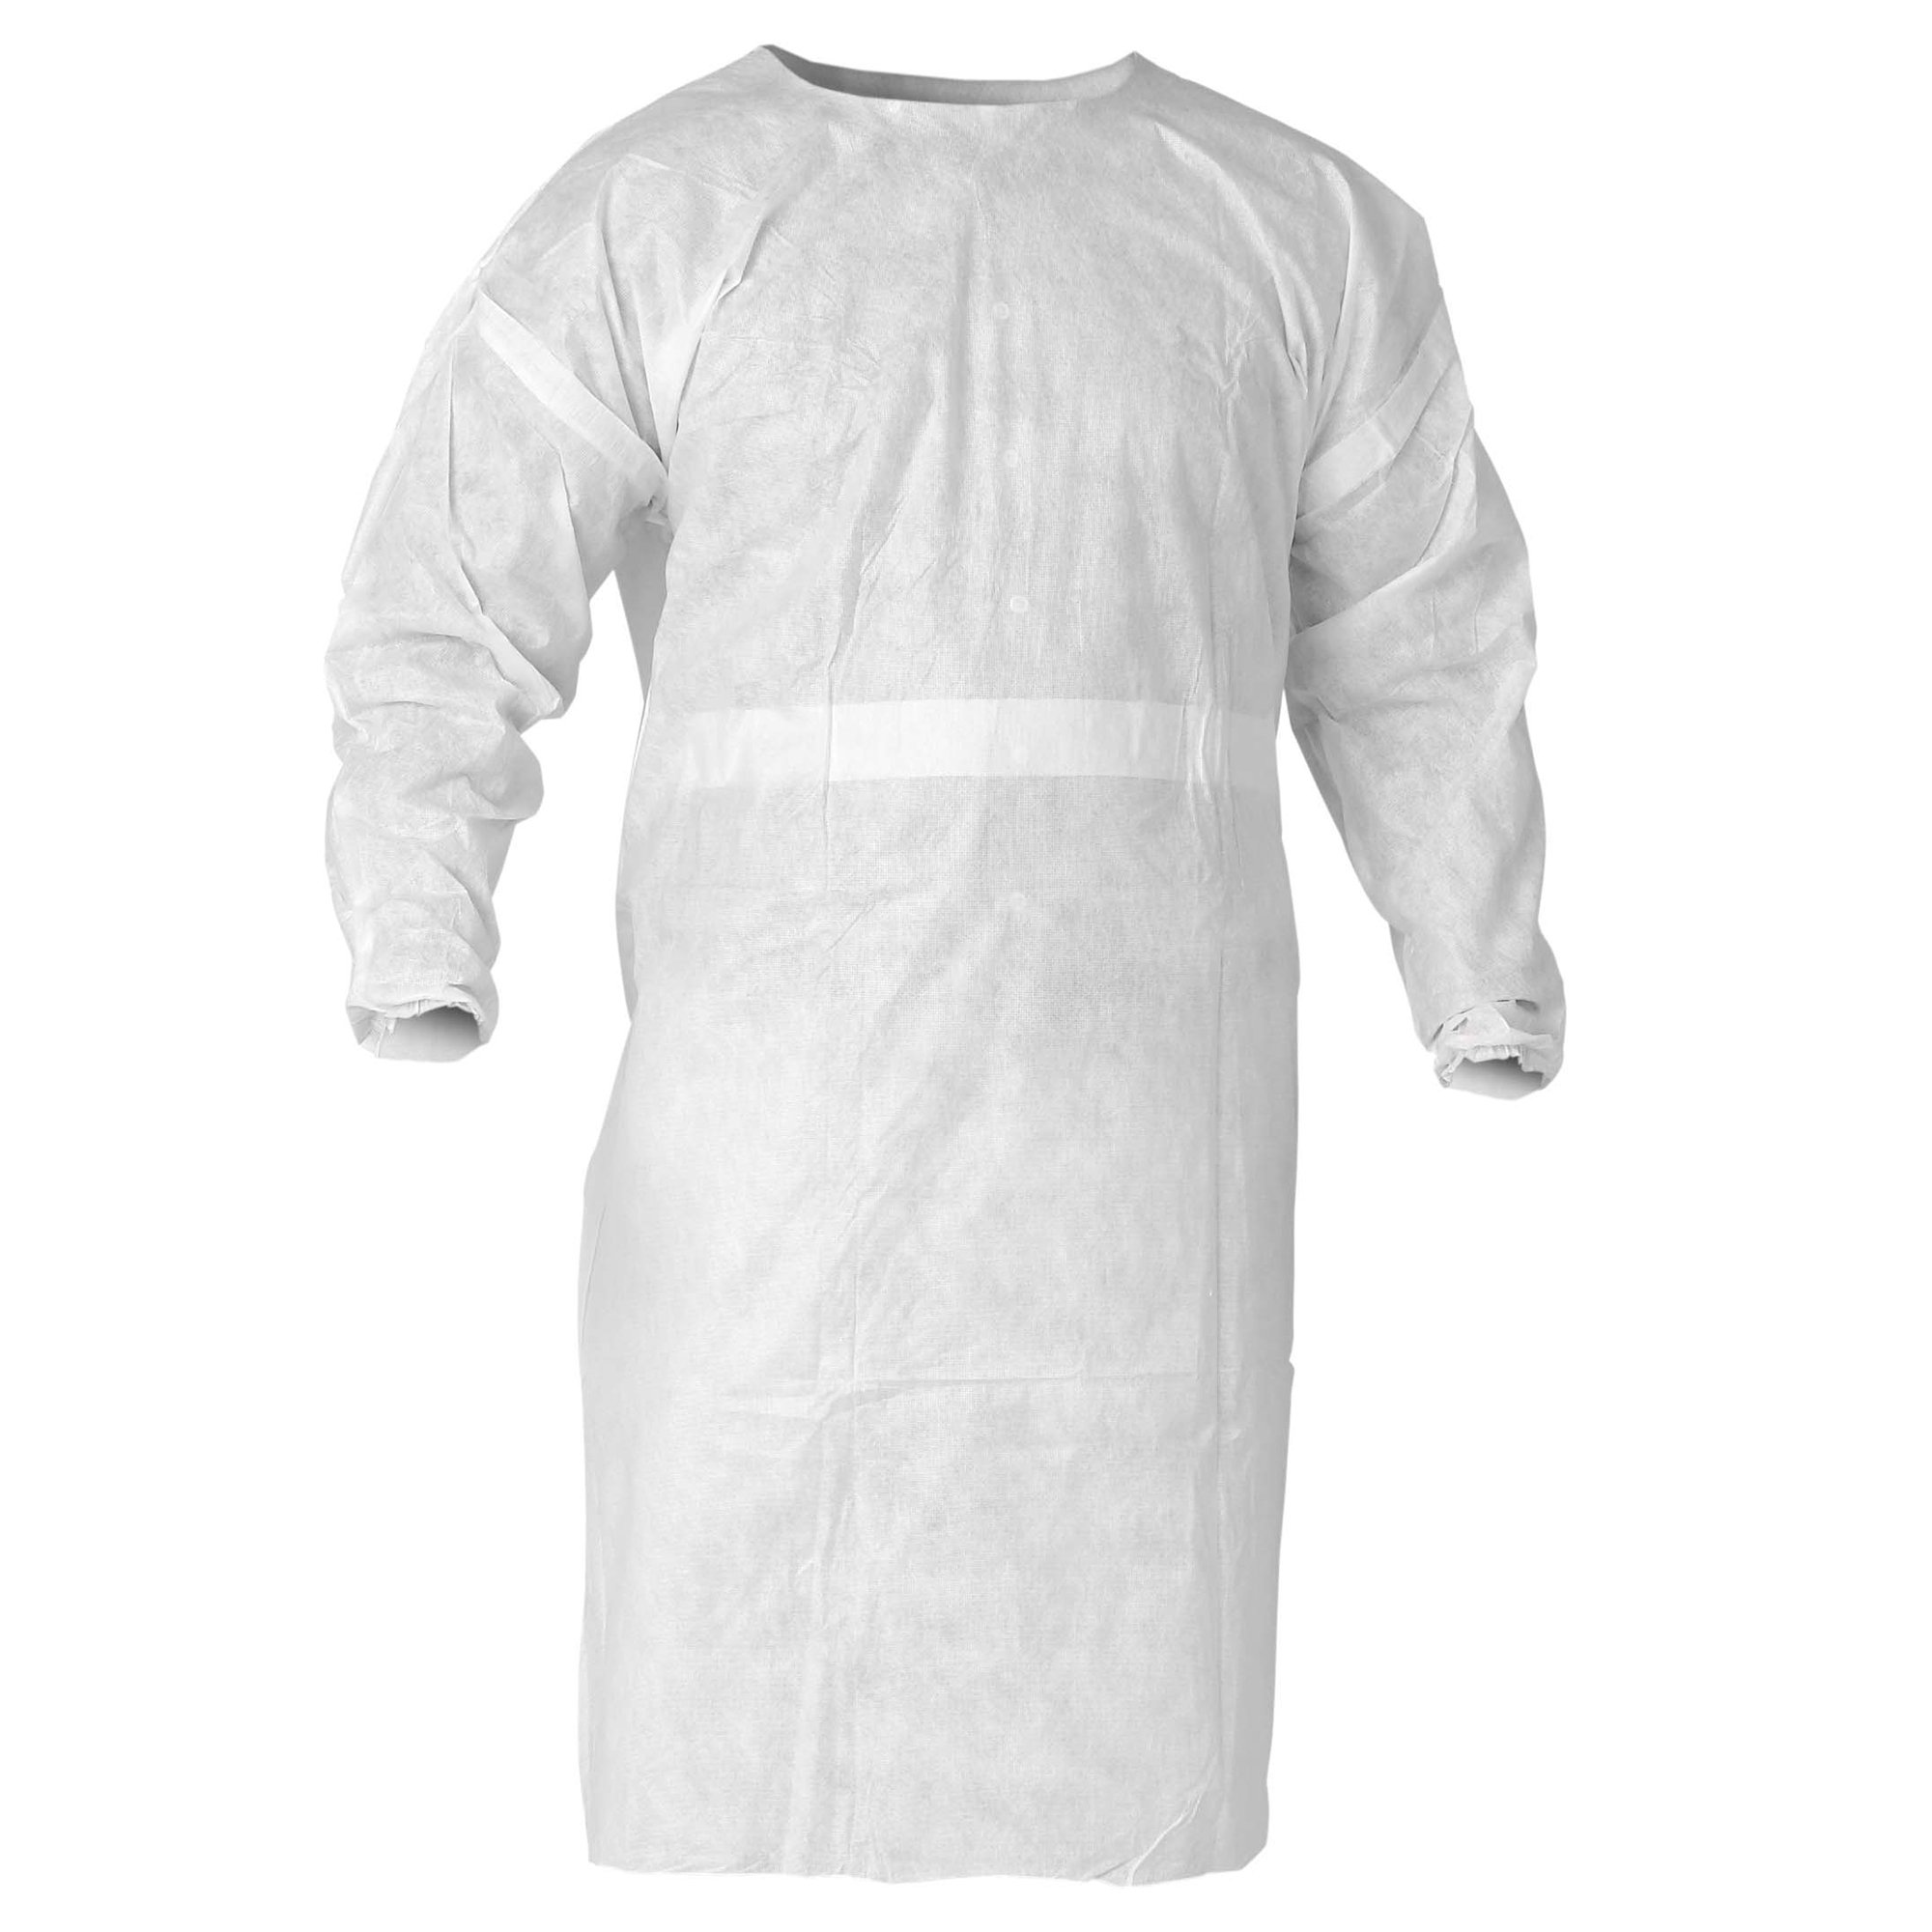 Kleenguard A20 Breathable Particle Protection Smocks (36150), Sonic Seams, Tie Closure, Elastic Wrists, White, Universal Size, 60 / Case